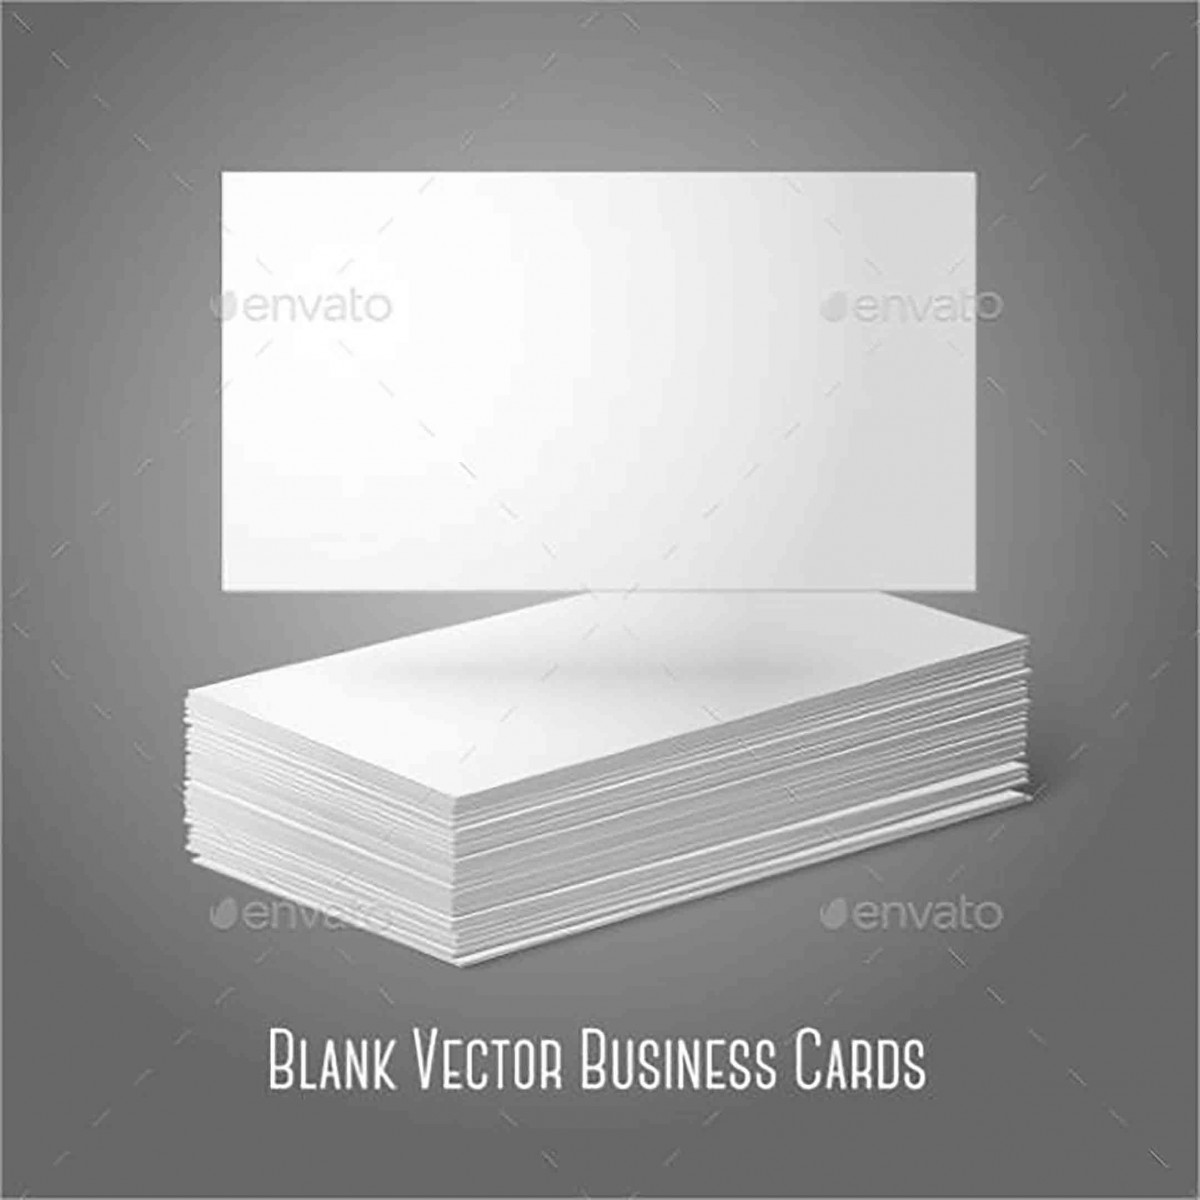 Blank Staple Business Card